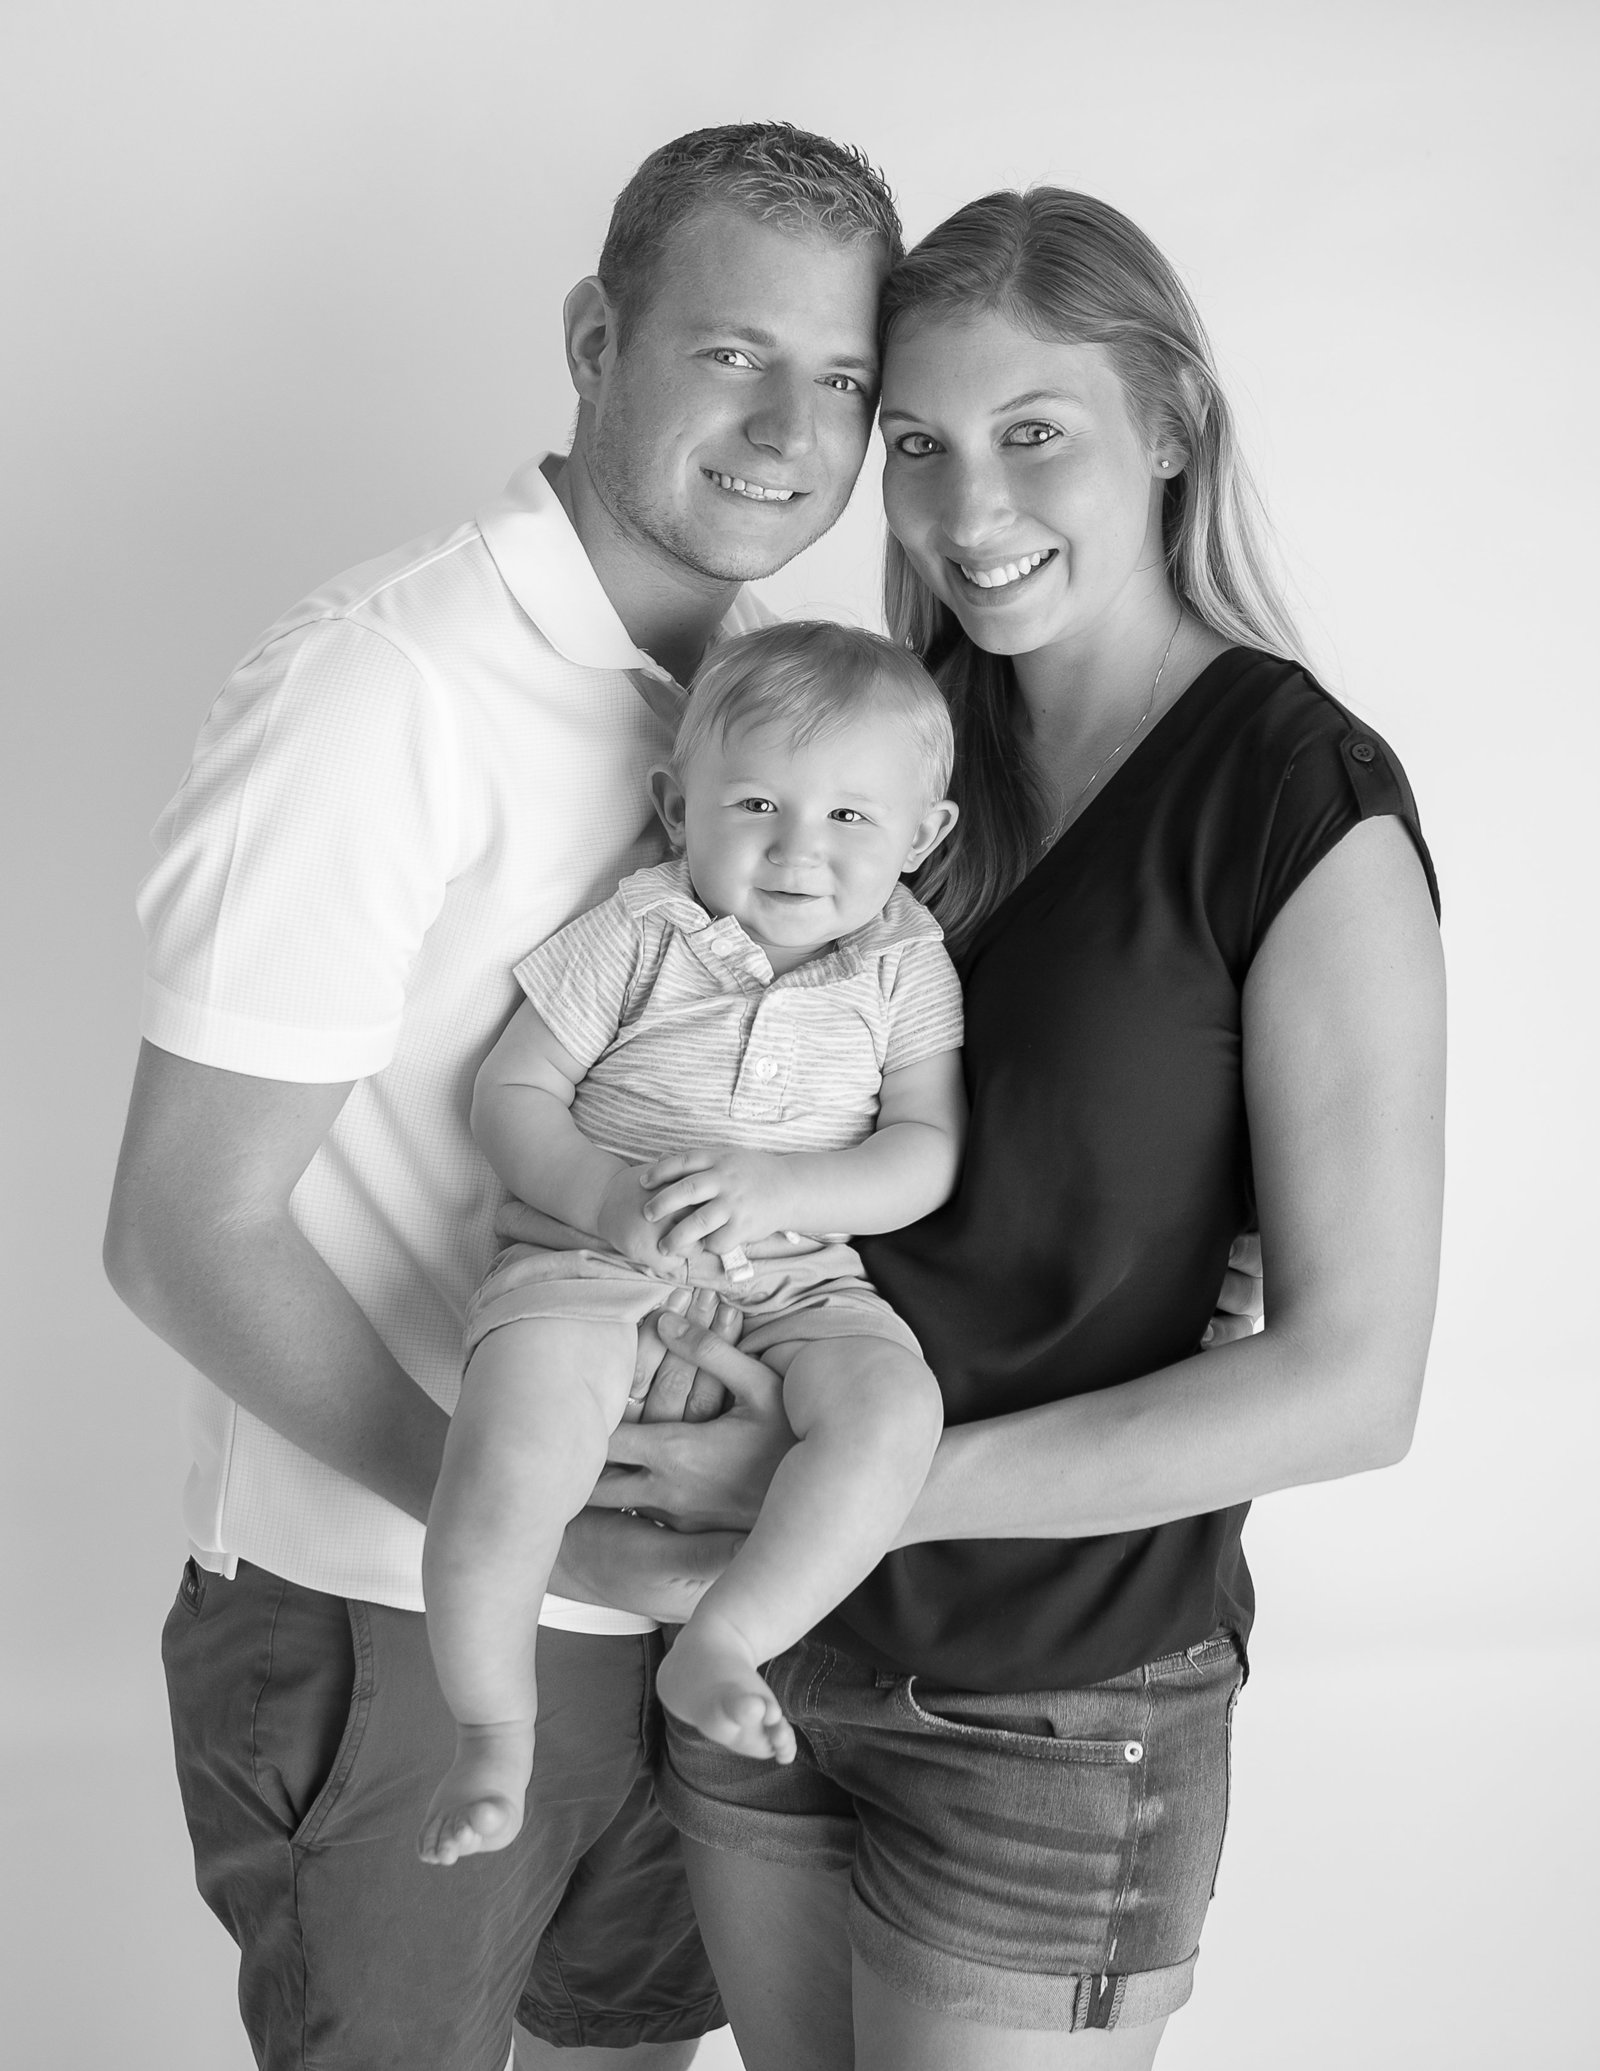 Black/white image - Mom, dad and one year old son, standing and smiling - In studio